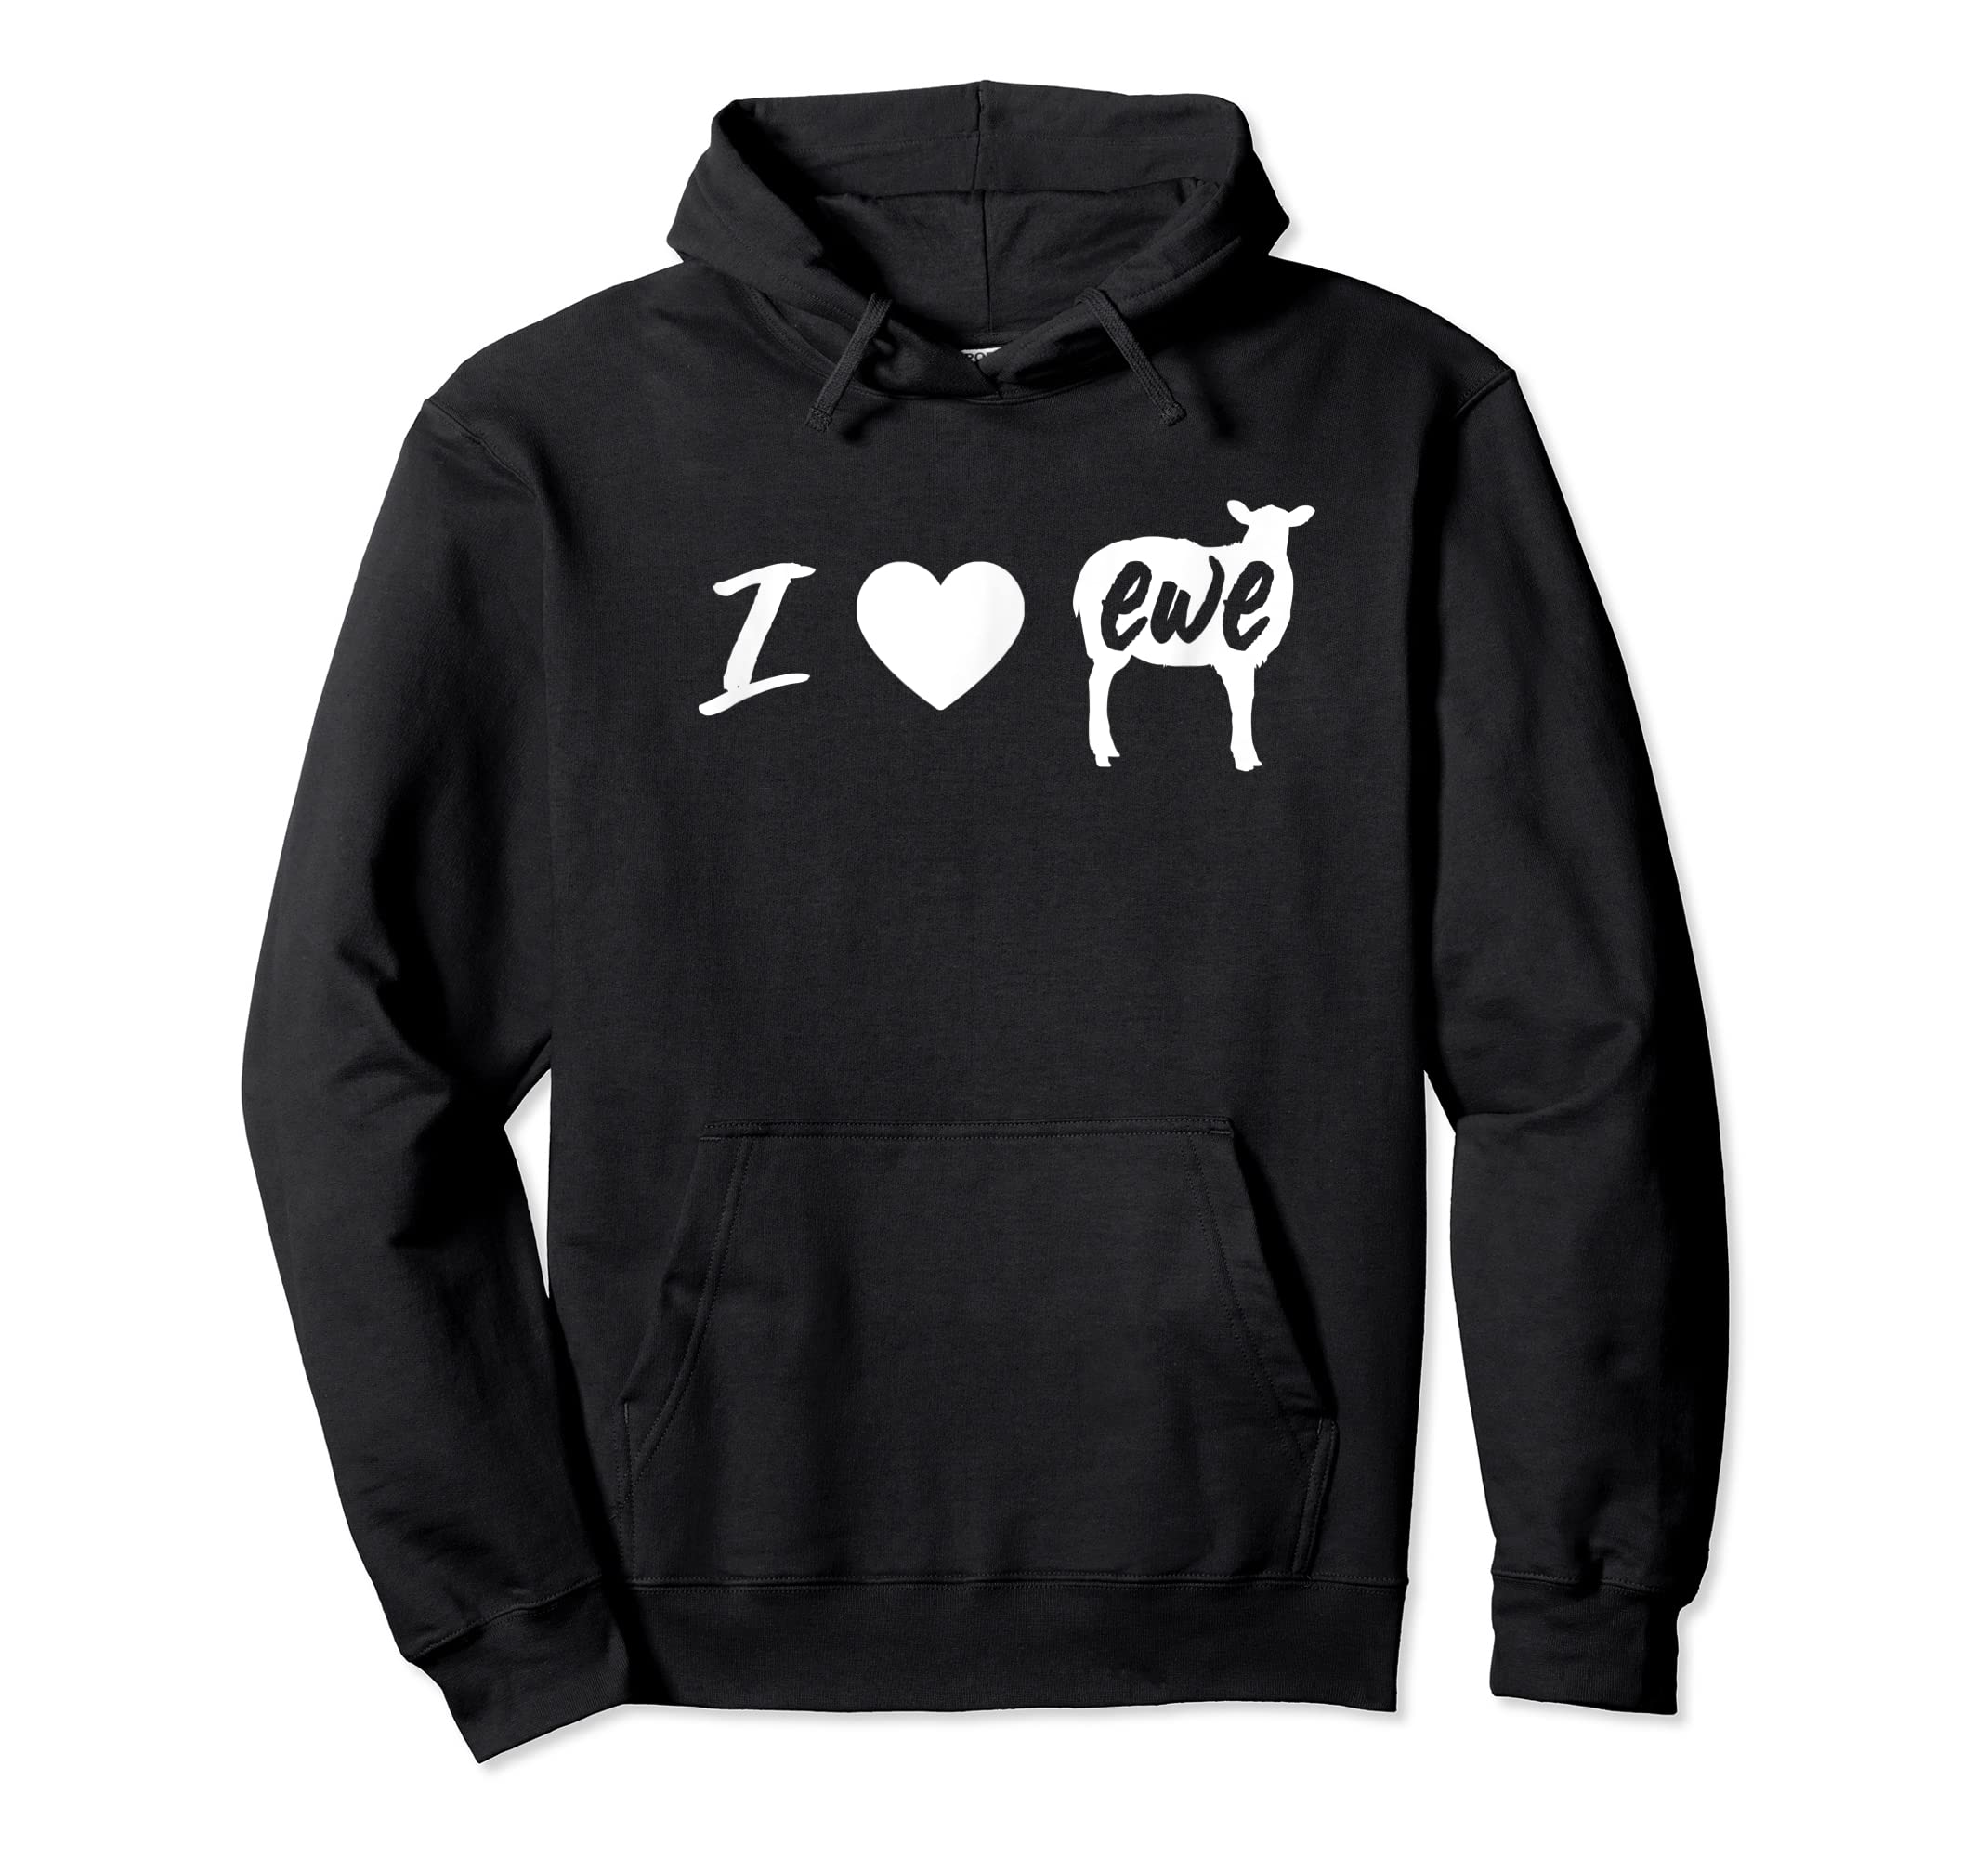 I Love Ewe - I Love You Sheep Pun Shirt-Hoodie-Black